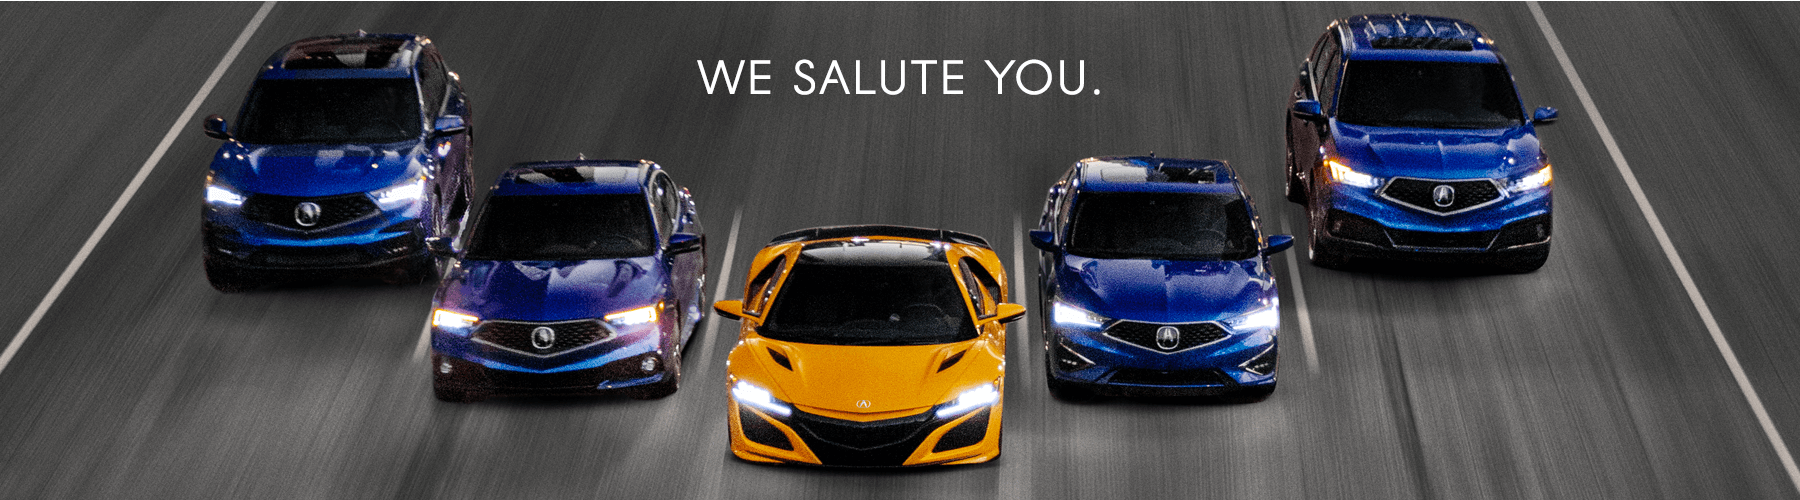 Acura We Salute You Military Banner